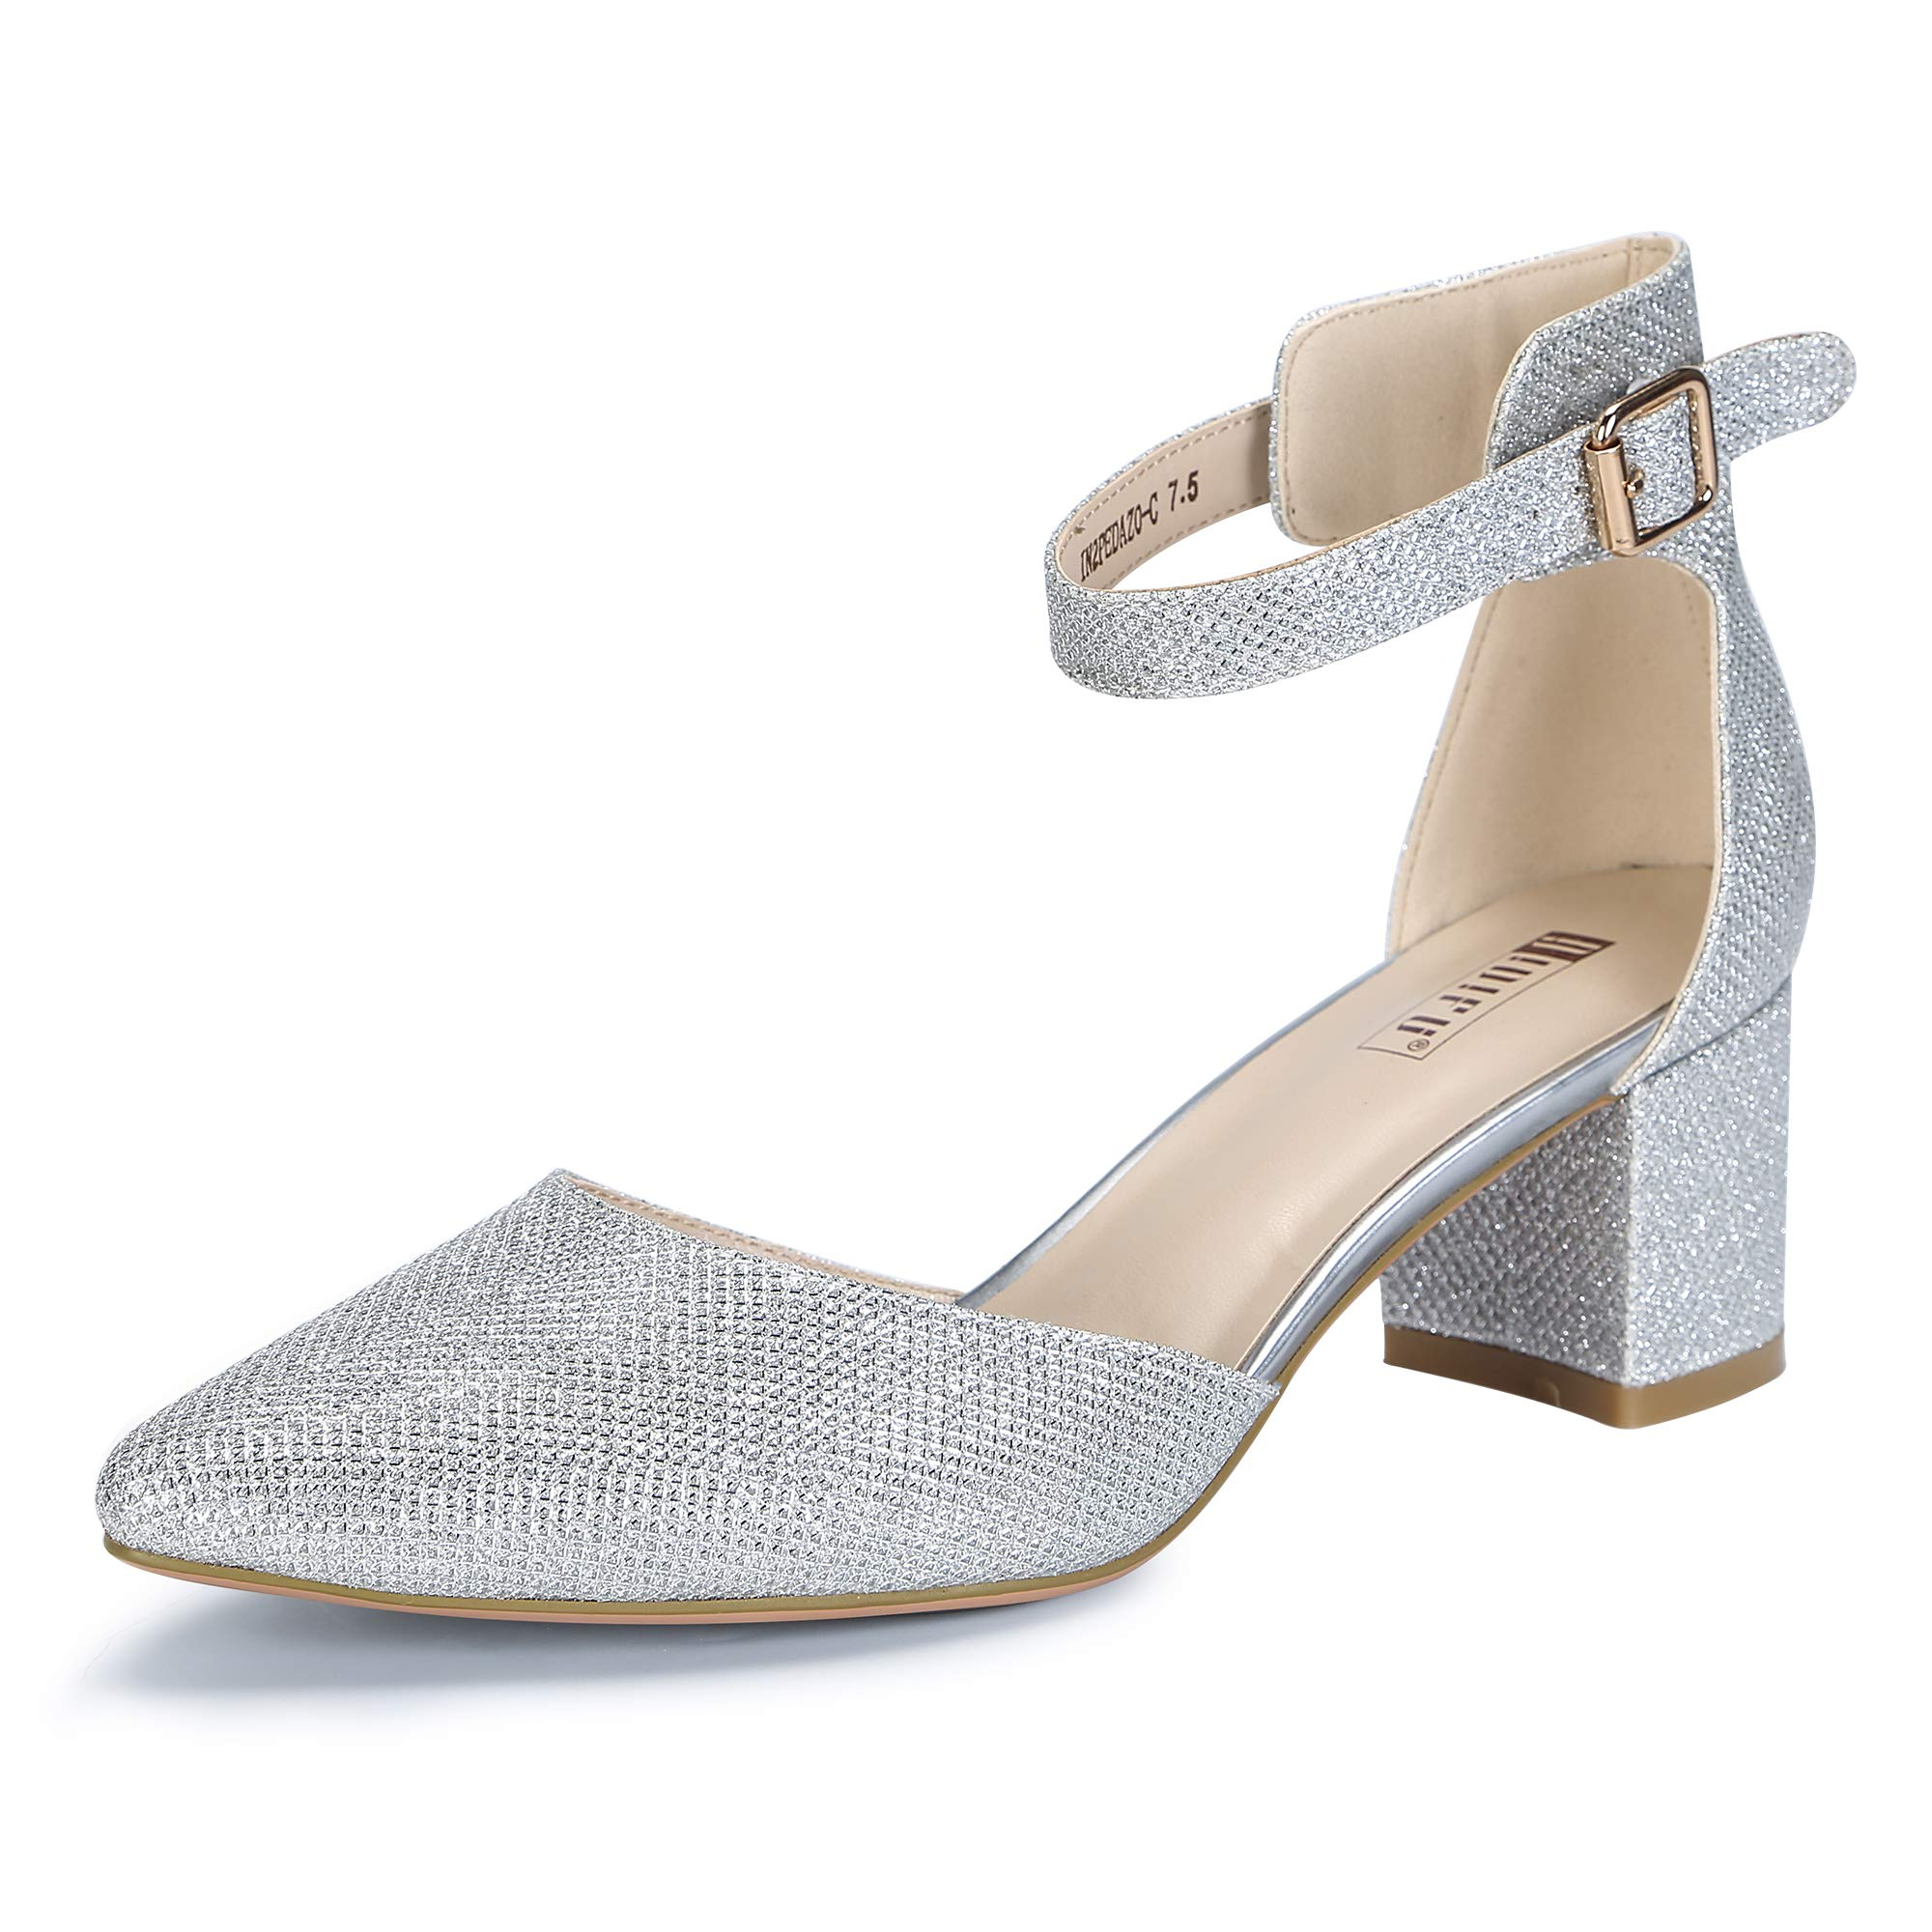 IDIFU Women's IN2 Pedazo-C Mid Chunky Heels Ankle Strap D'Orsay Pumps (Silver Glitter, 6 B(M) US)